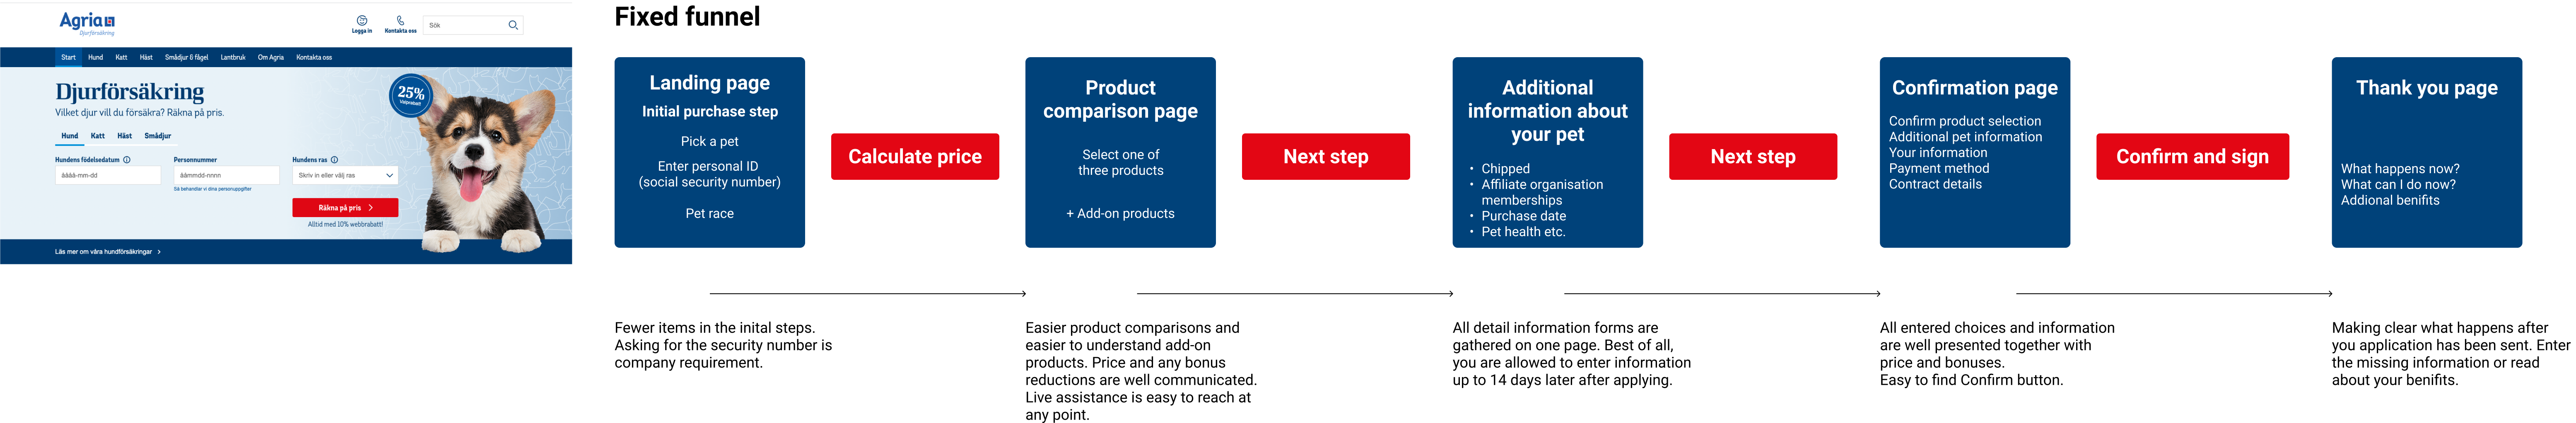 Lower the threshold of the initial step, clear communication of price and products, offer postponed entering of hard-to-get information.